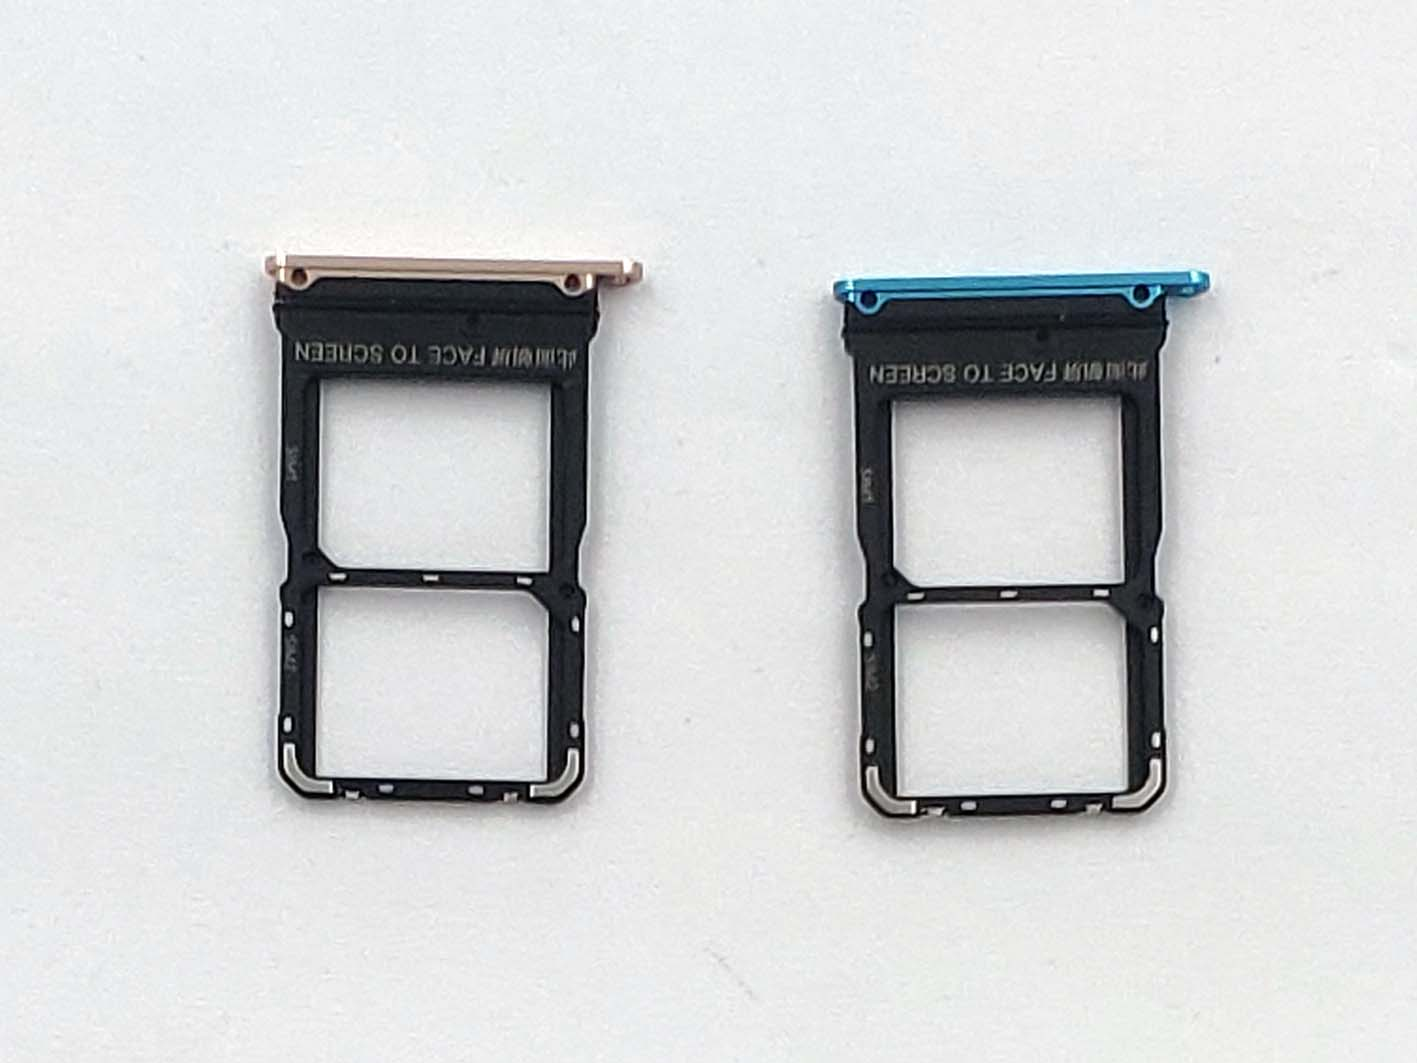 Signal Magnify Flex Cable for iPhone 5C